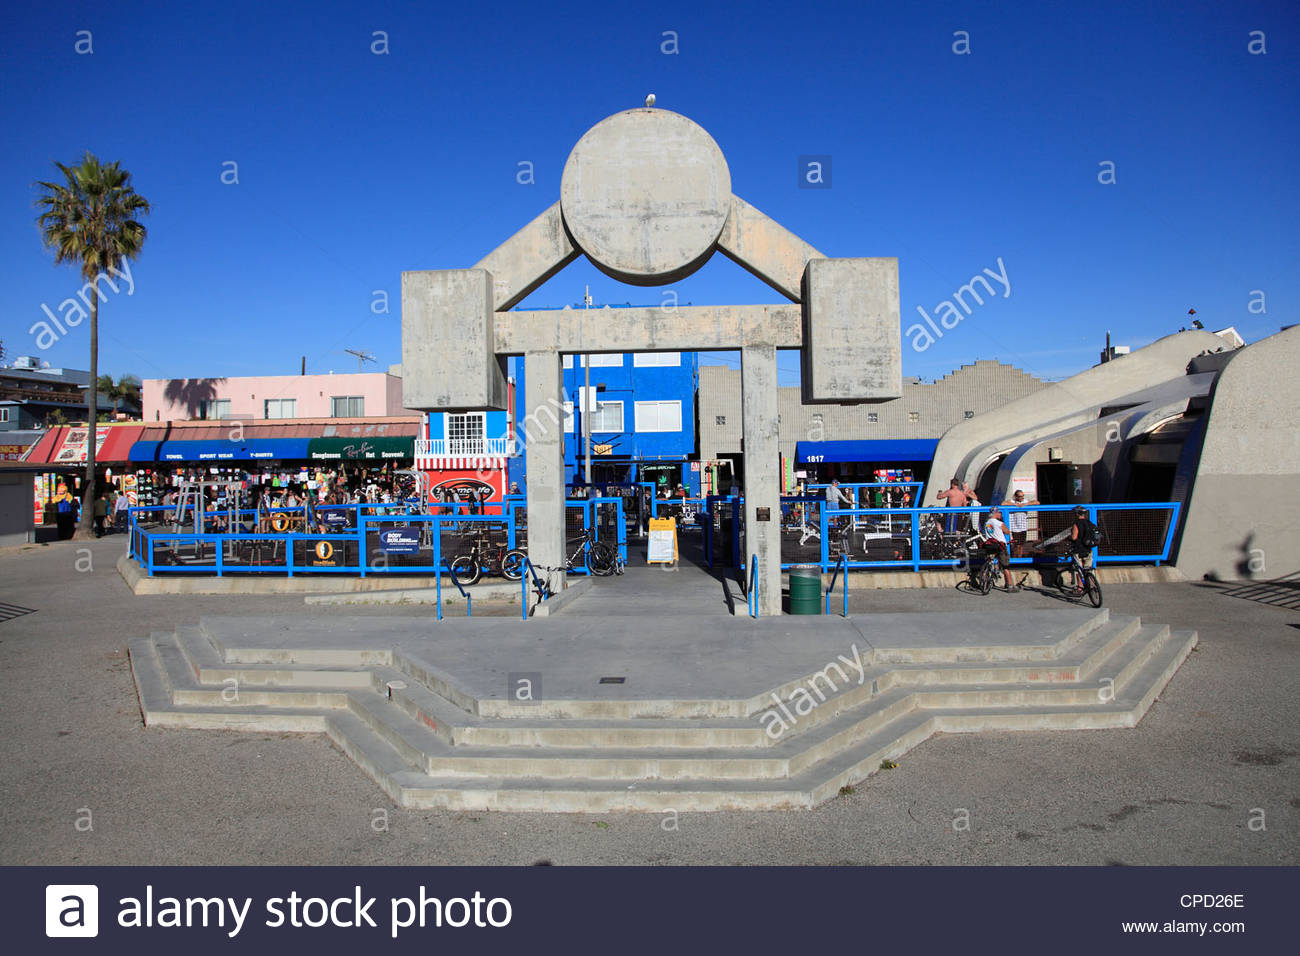 Muscle Beach Stock Photos Muscle Beach Stock Images   Alamy 1300x956